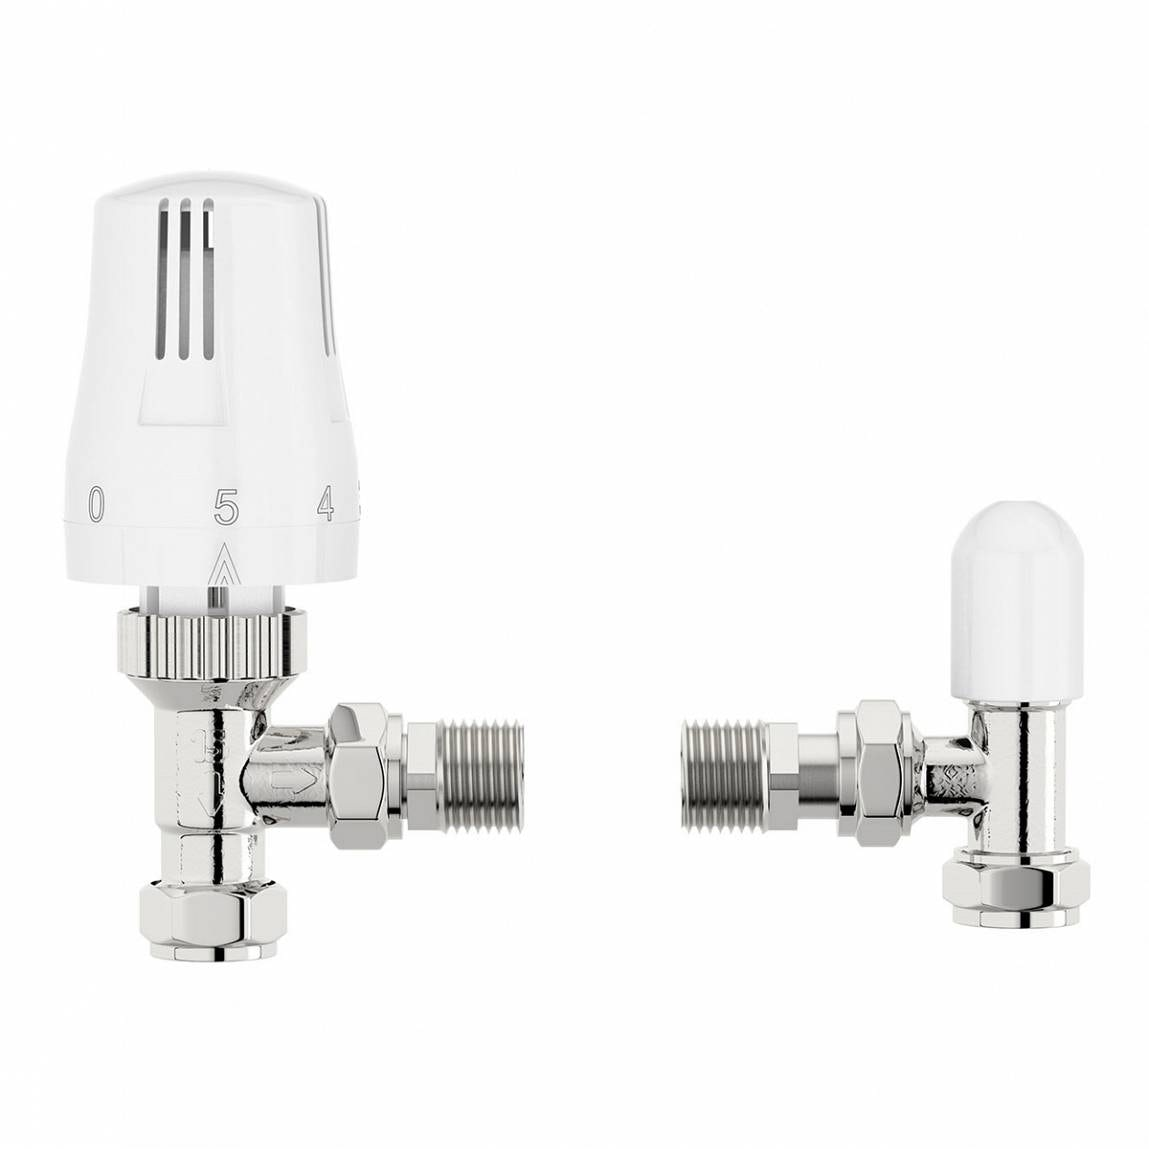 Thermostatic White Angled Radiator Valves